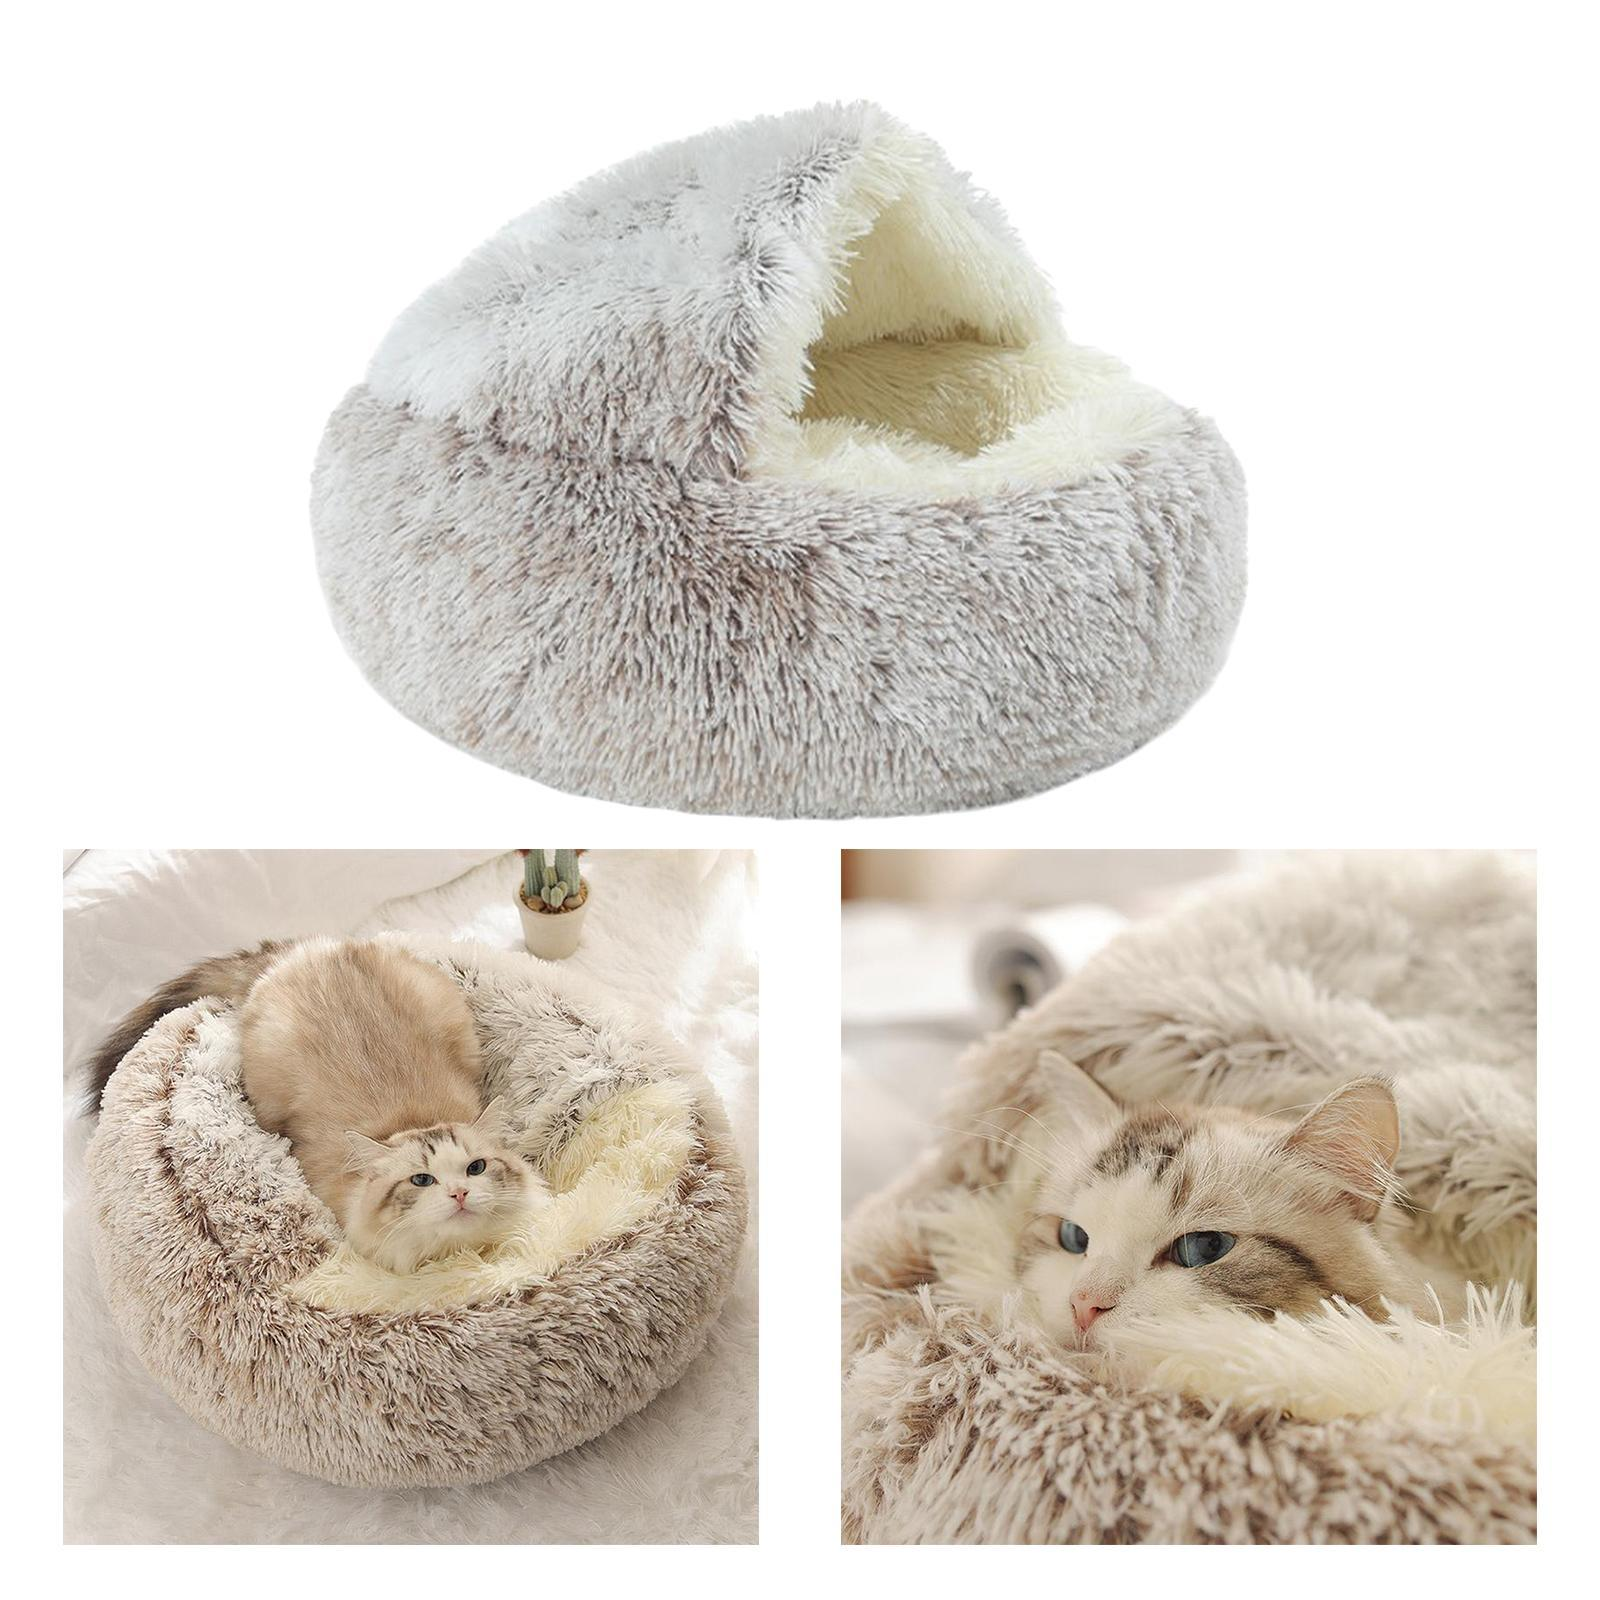 miniature 43 - Pet Chien Chat Calmant Lit Rond Nid Chaud En Peluche Confortable de Couchage